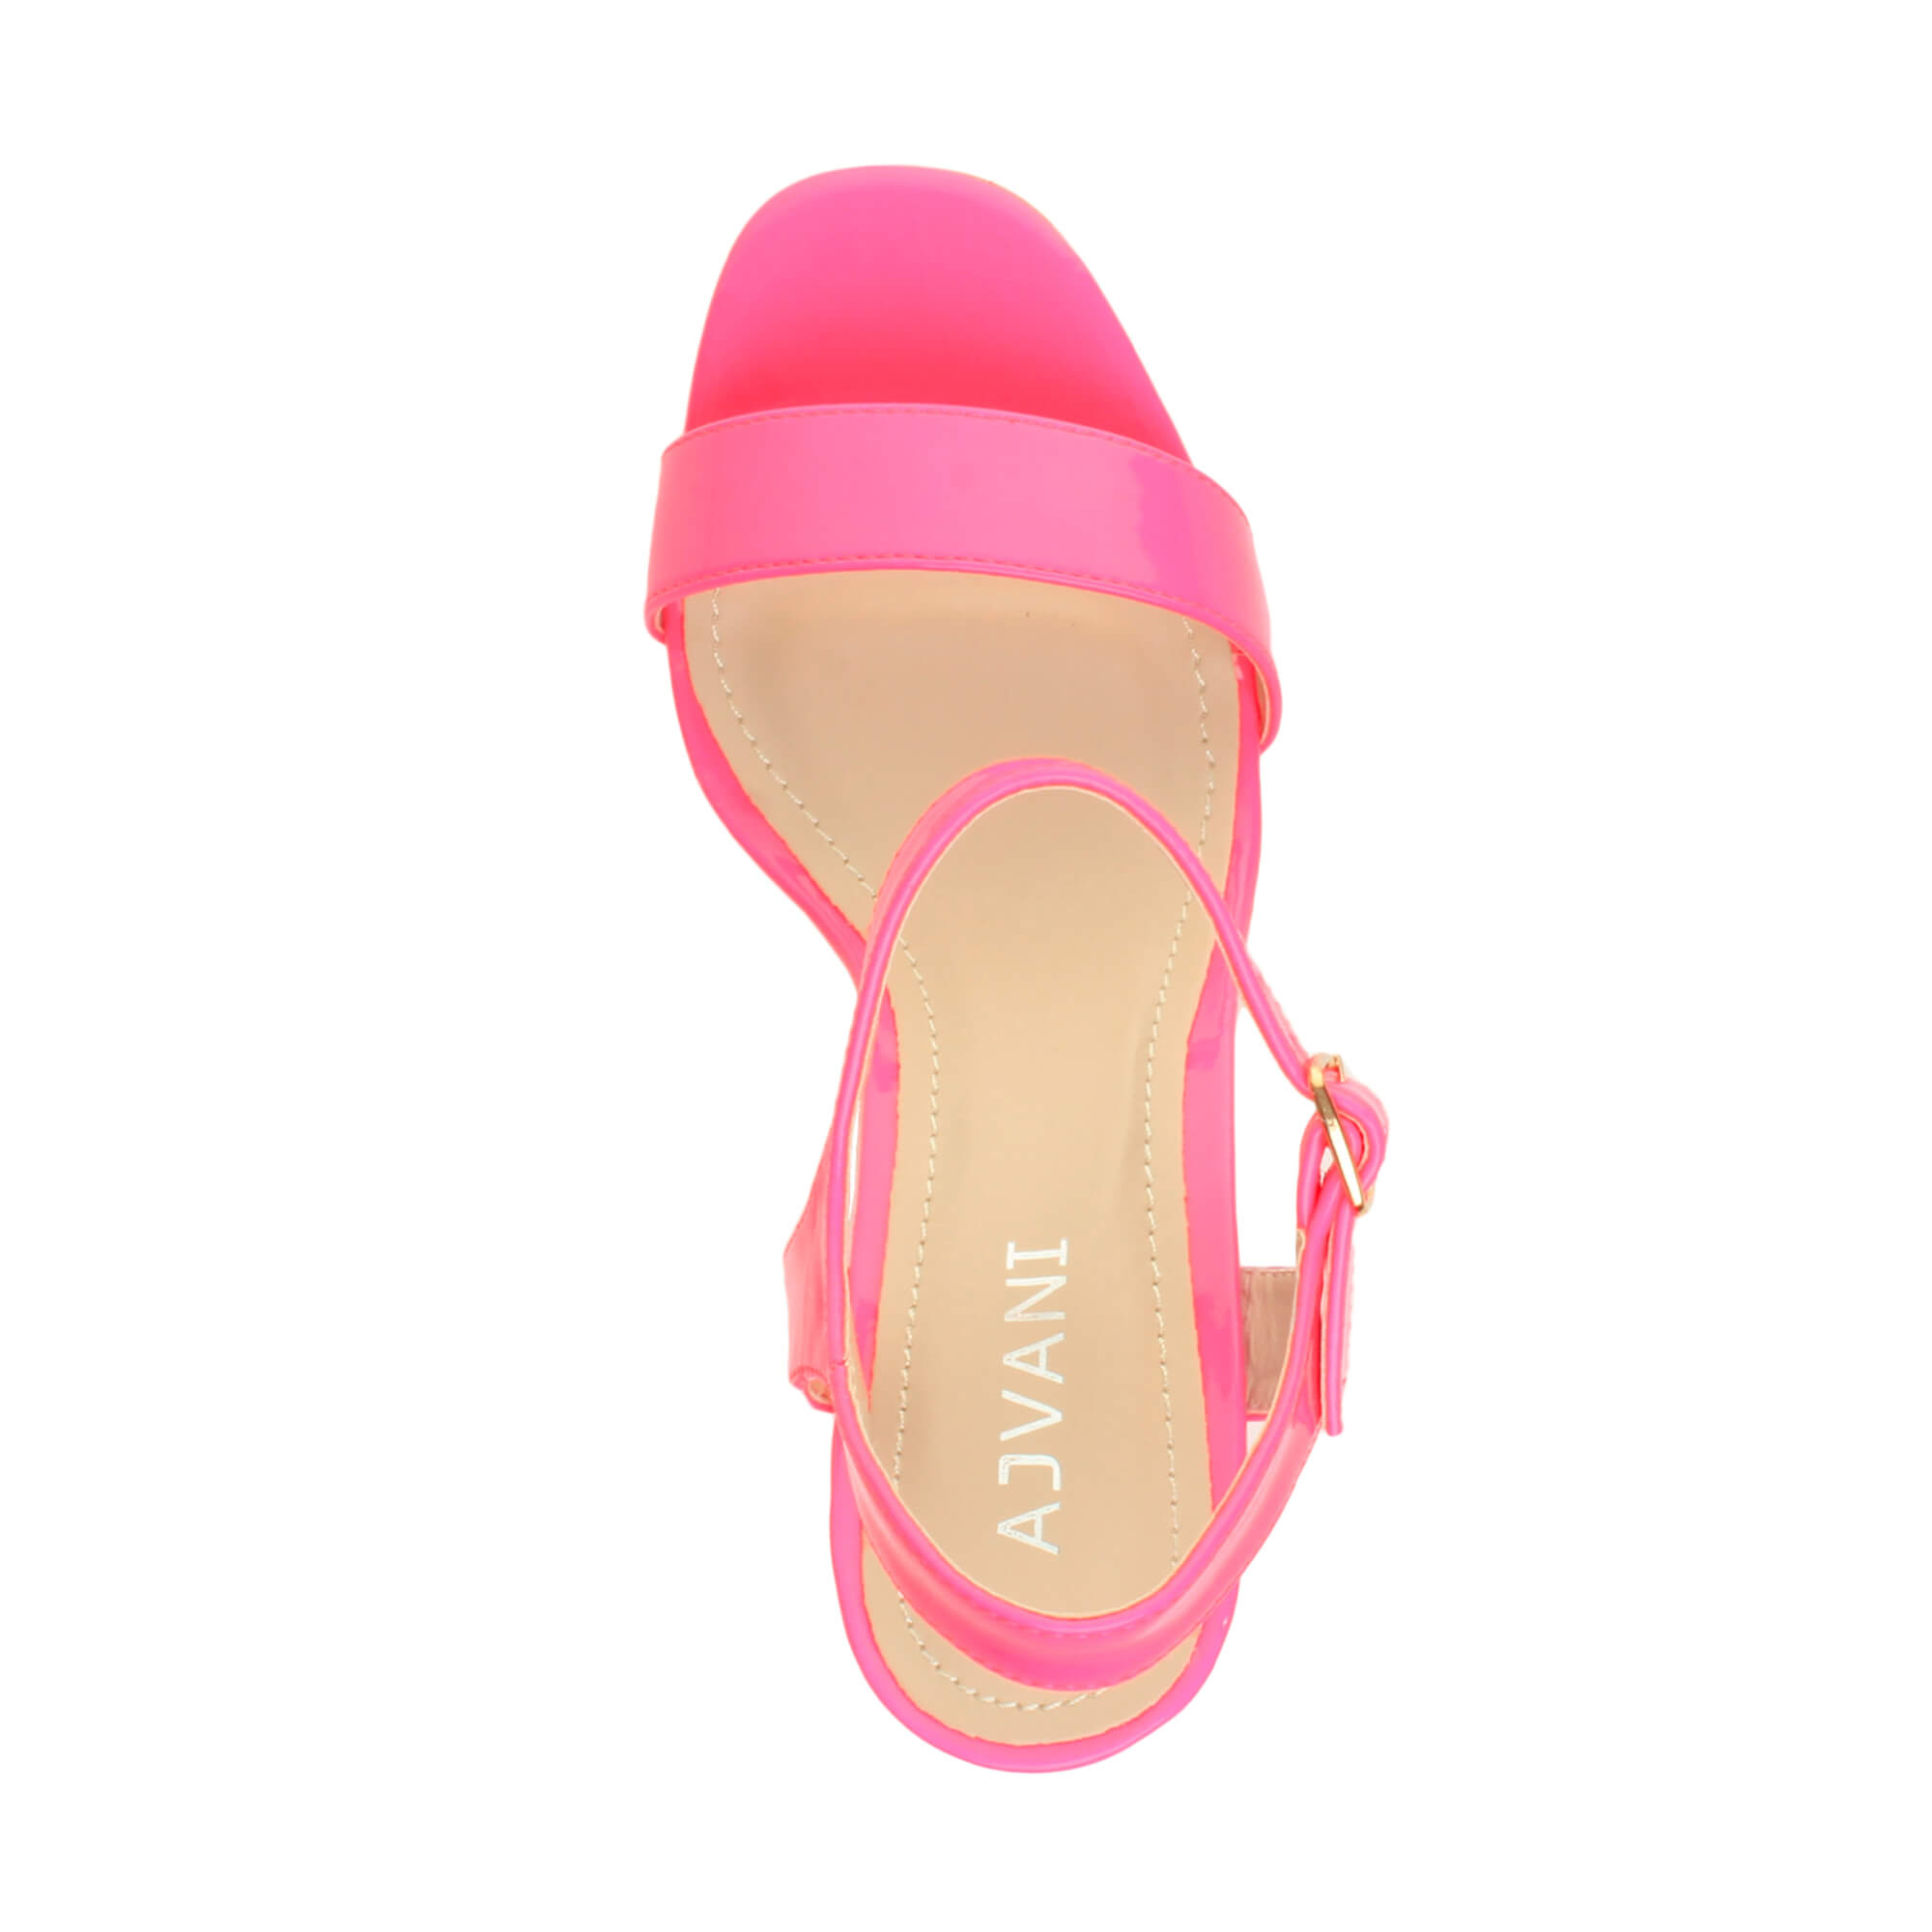 WOMENS-LADIES-HIGH-HEEL-BUCKLE-STRAPPY-BASIC-BARELY-THERE-SANDALS-SHOES-SIZE thumbnail 84